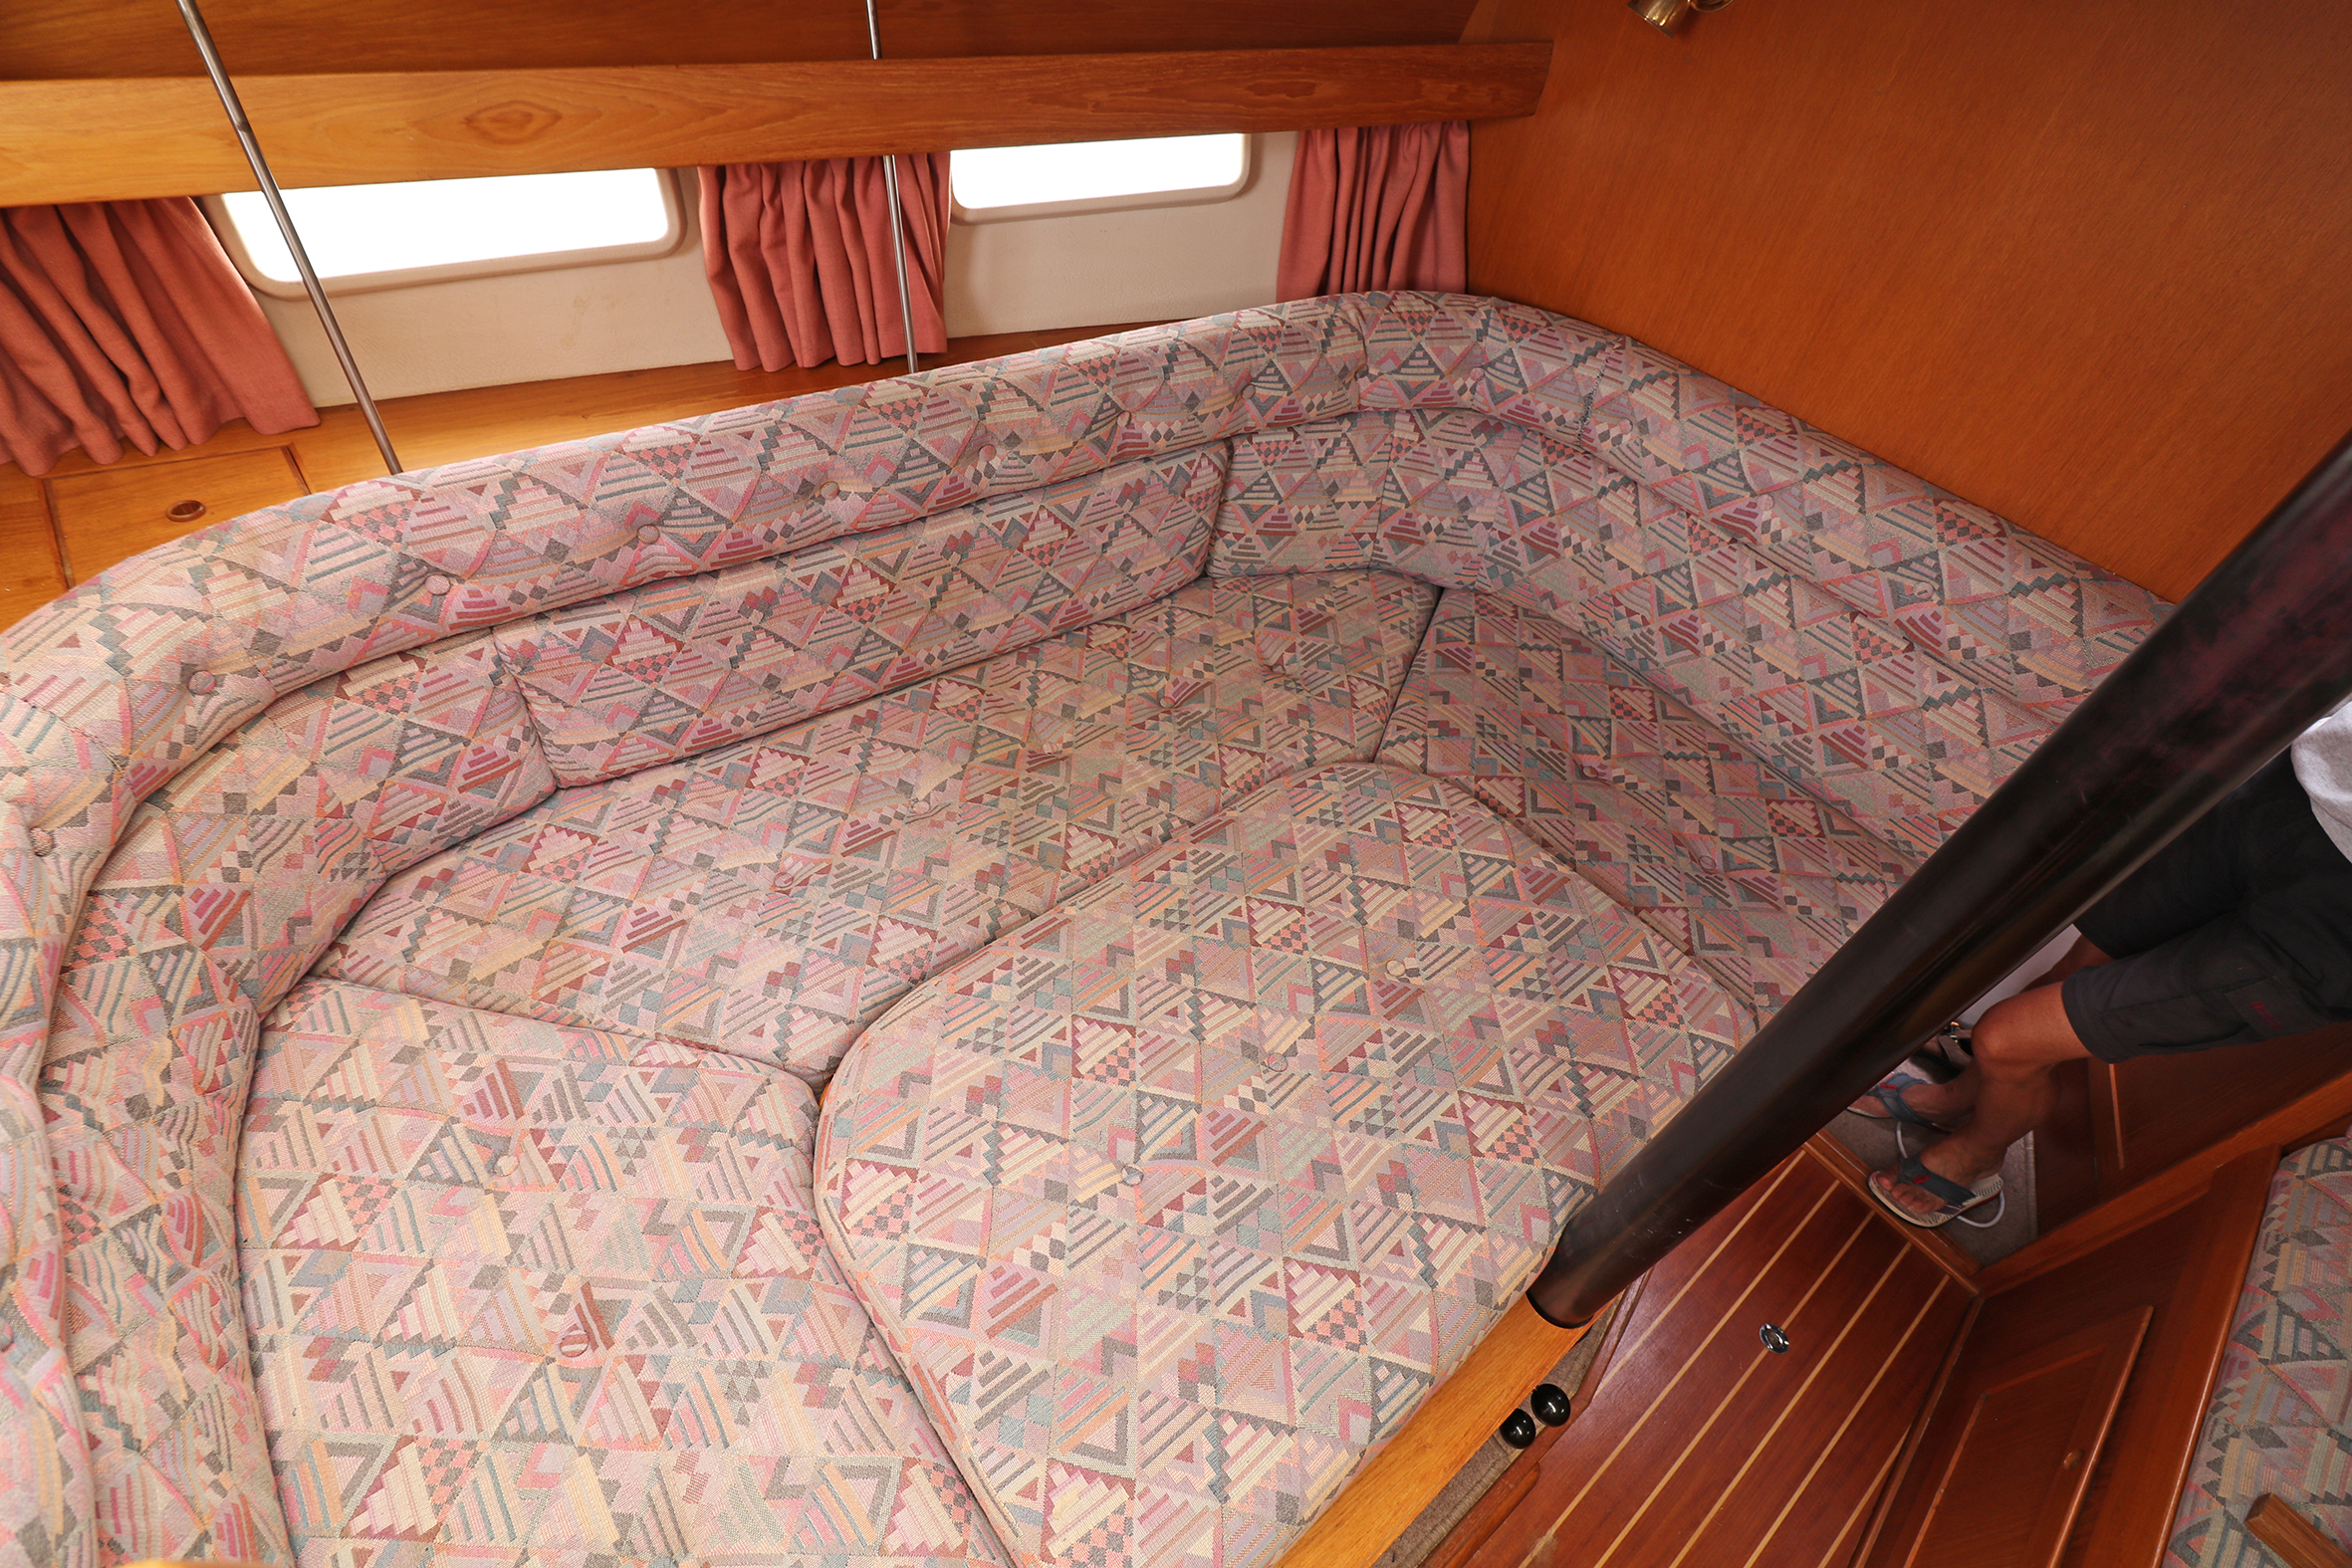 Seating converts to a double berth